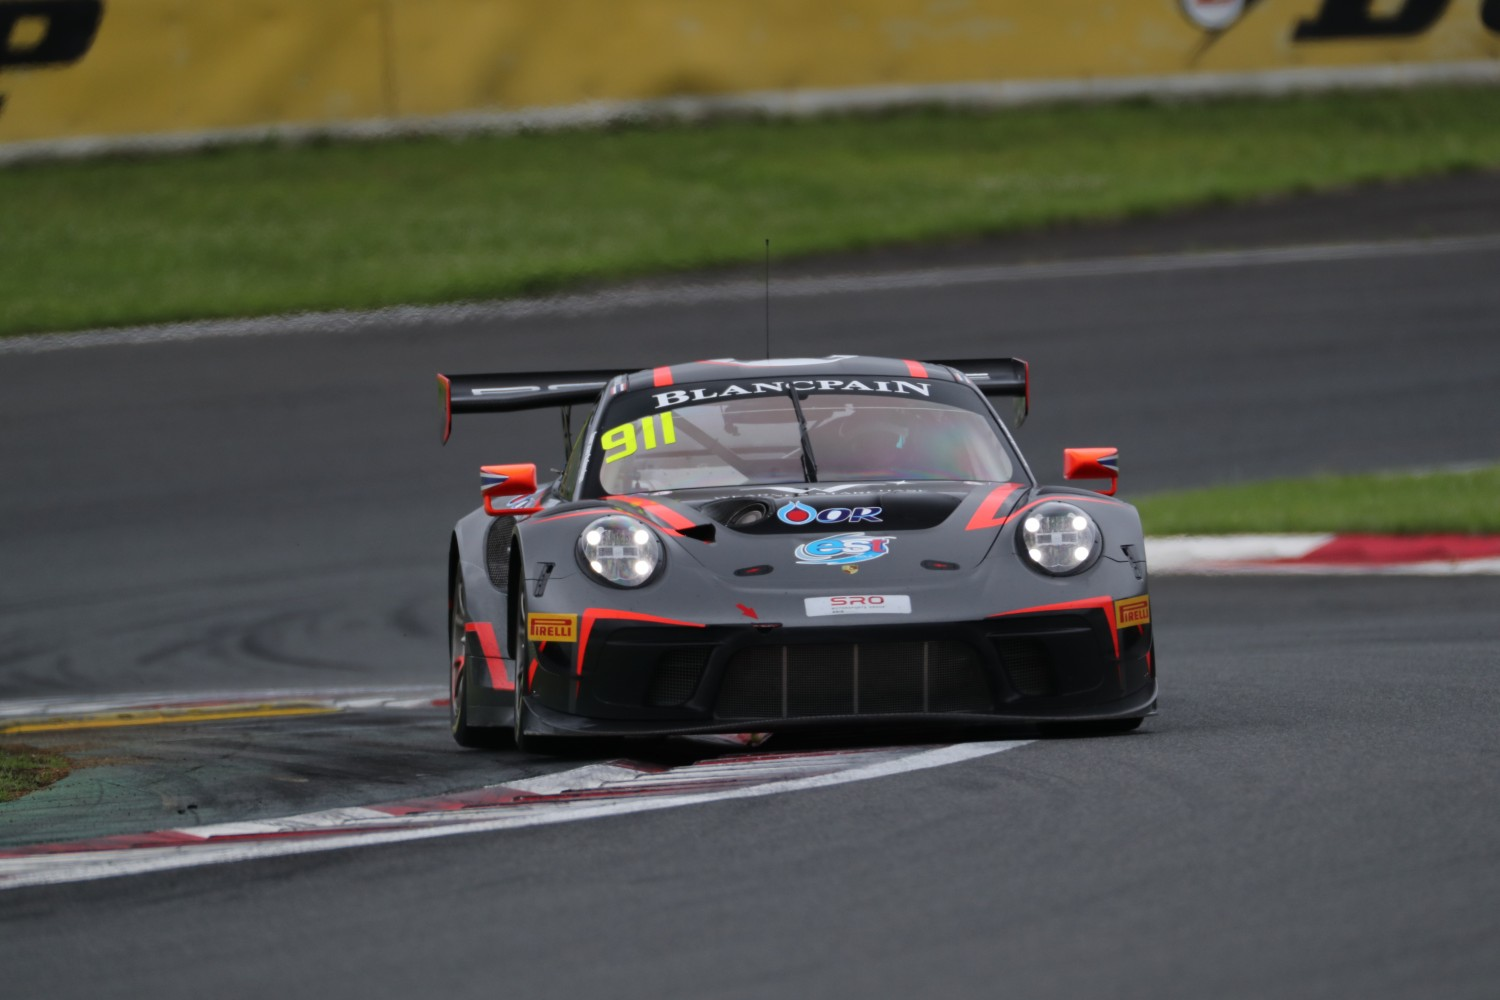 Absolute Porsche and Craft-Bamboo Mercedes-AMG share qualifying spoils at Fuji